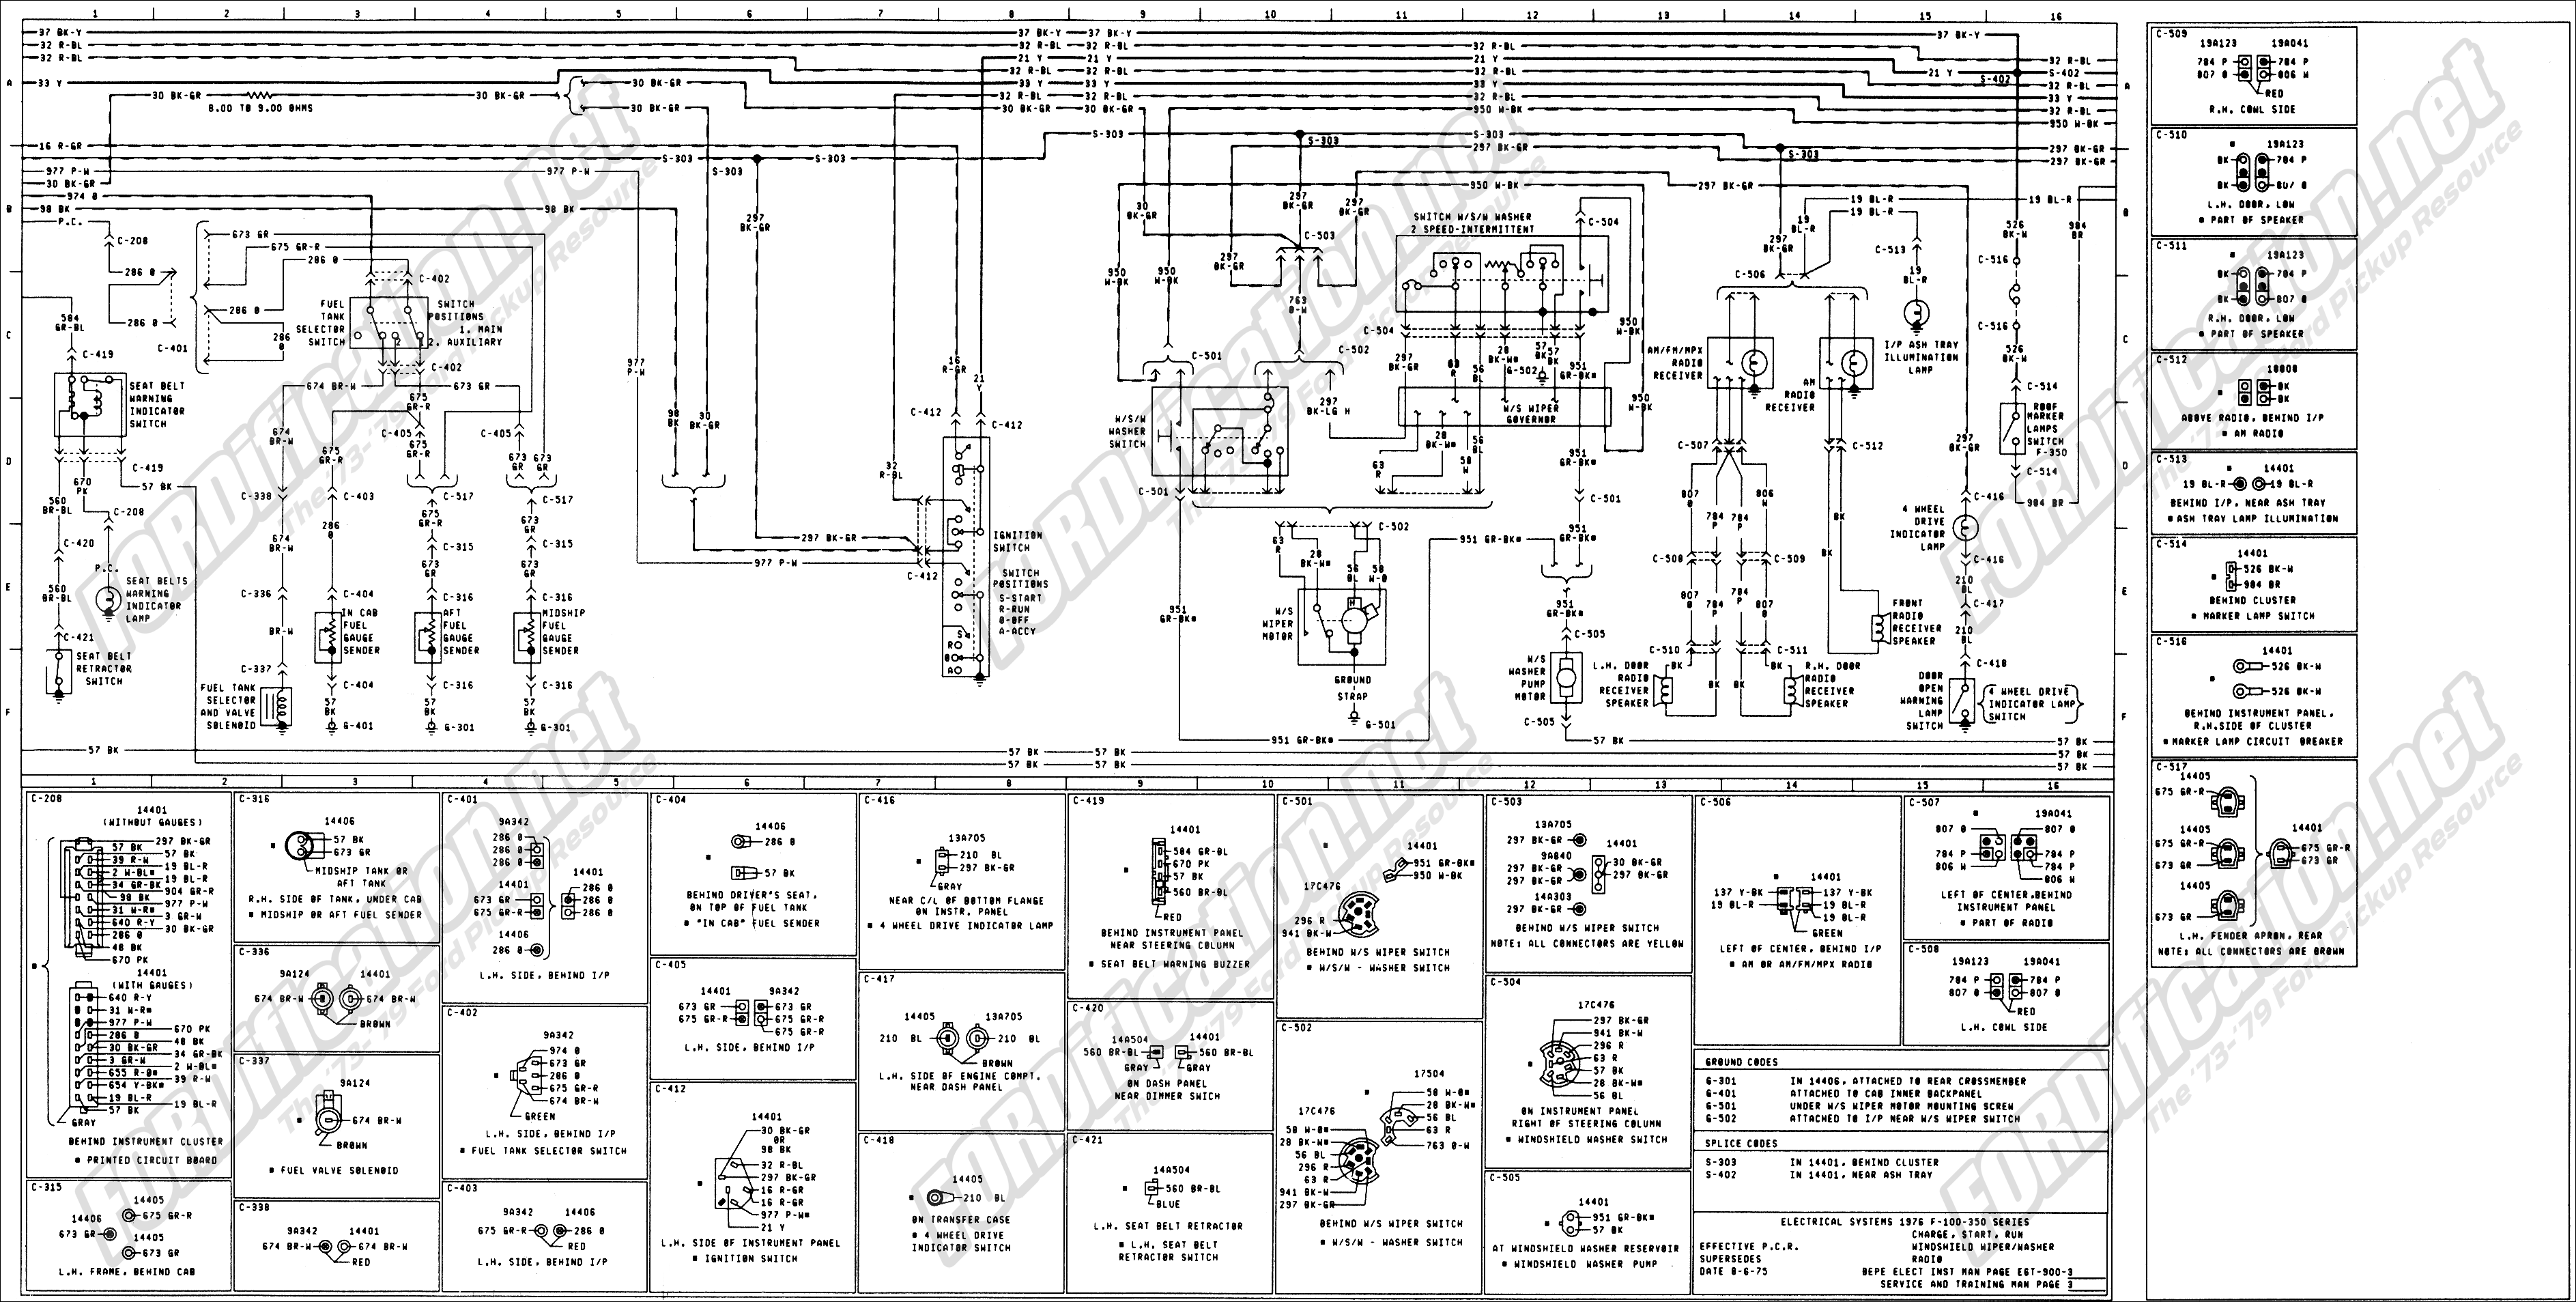 wiring_76master_3of9 1973 1979 ford truck wiring diagrams & schematics fordification net 2008 Ford F550 Fuse Diagram at pacquiaovsvargaslive.co